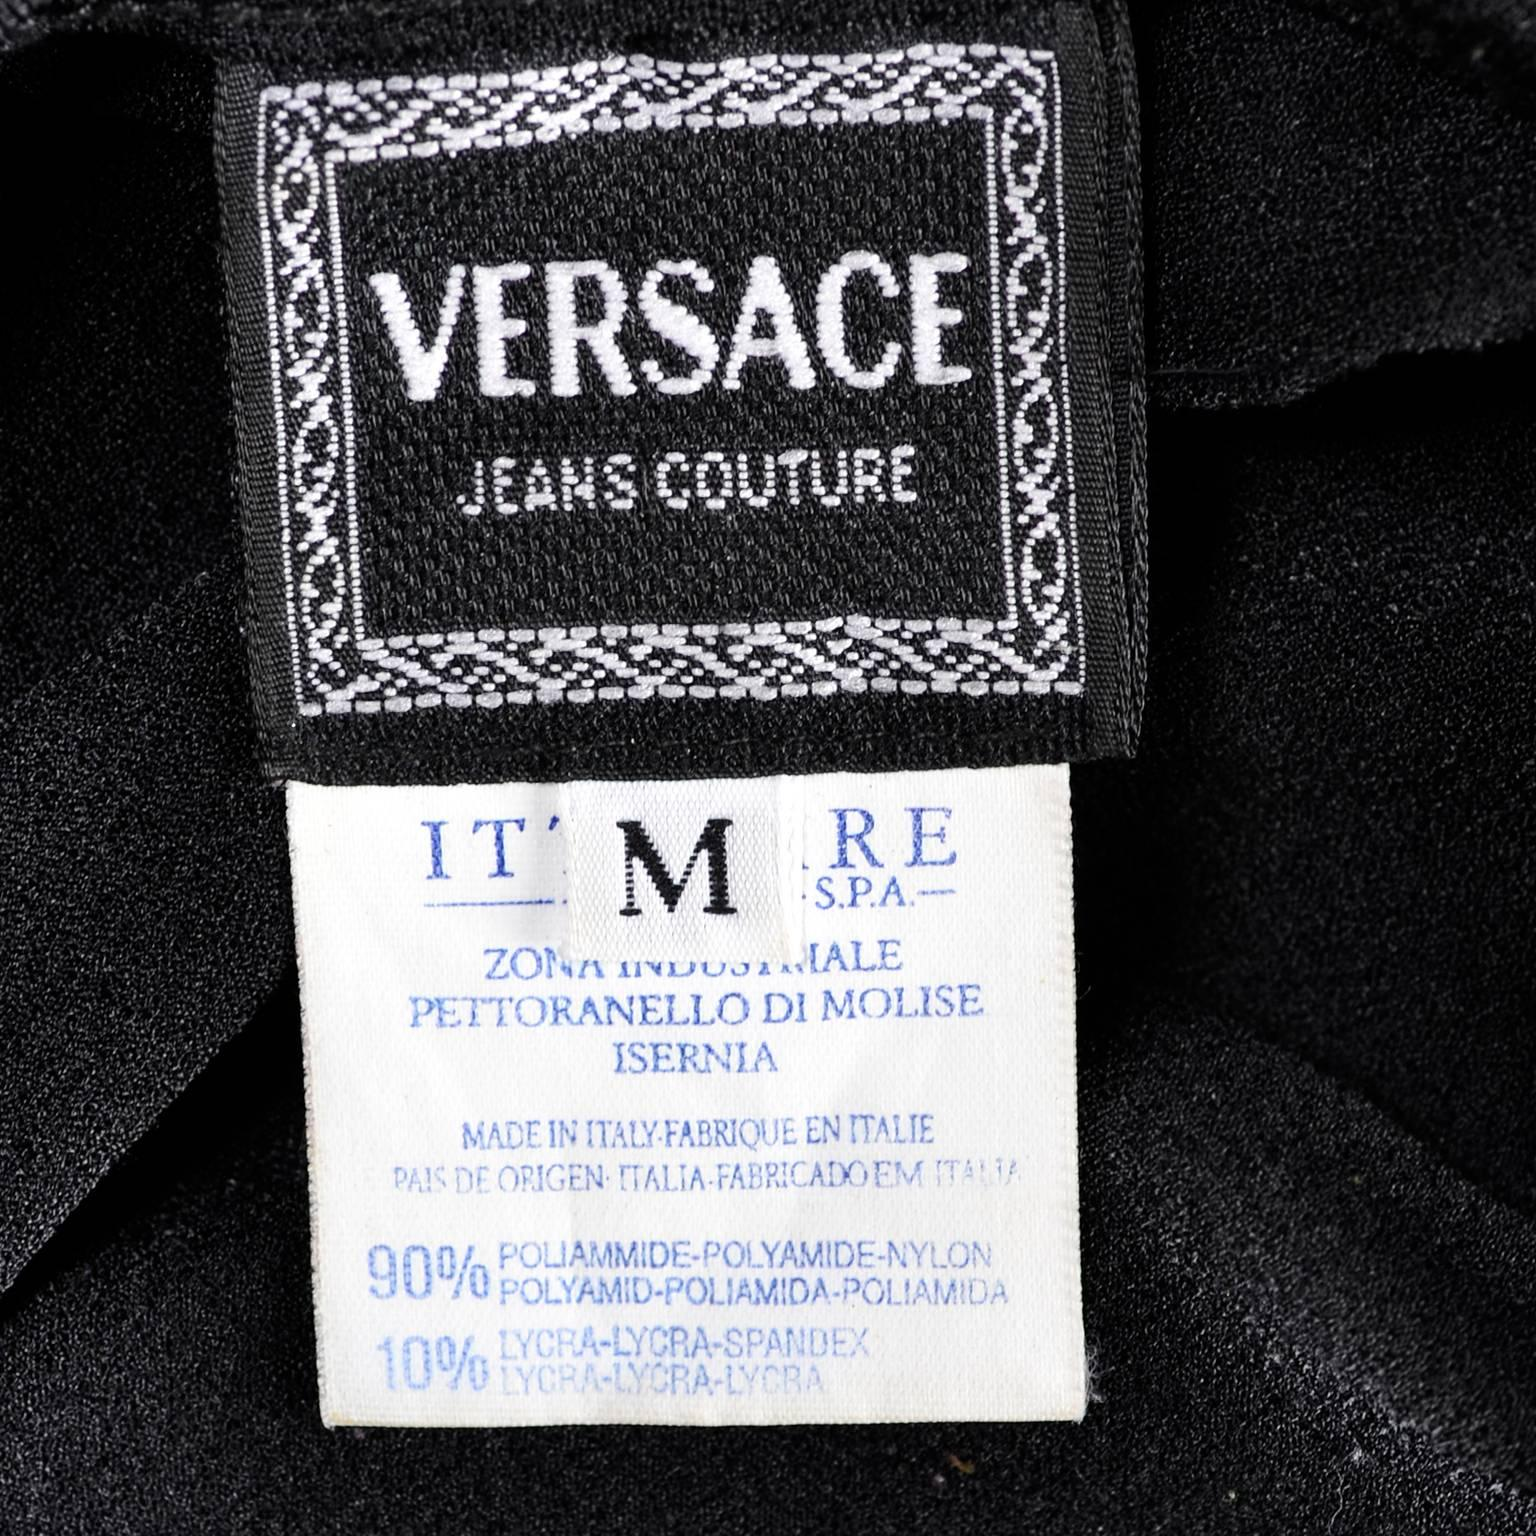 42484a86ce74 Gianni Versace Bodysuit Versace Jeans Couture Logo Top w Medusa Logo For  Sale at 1stdibs